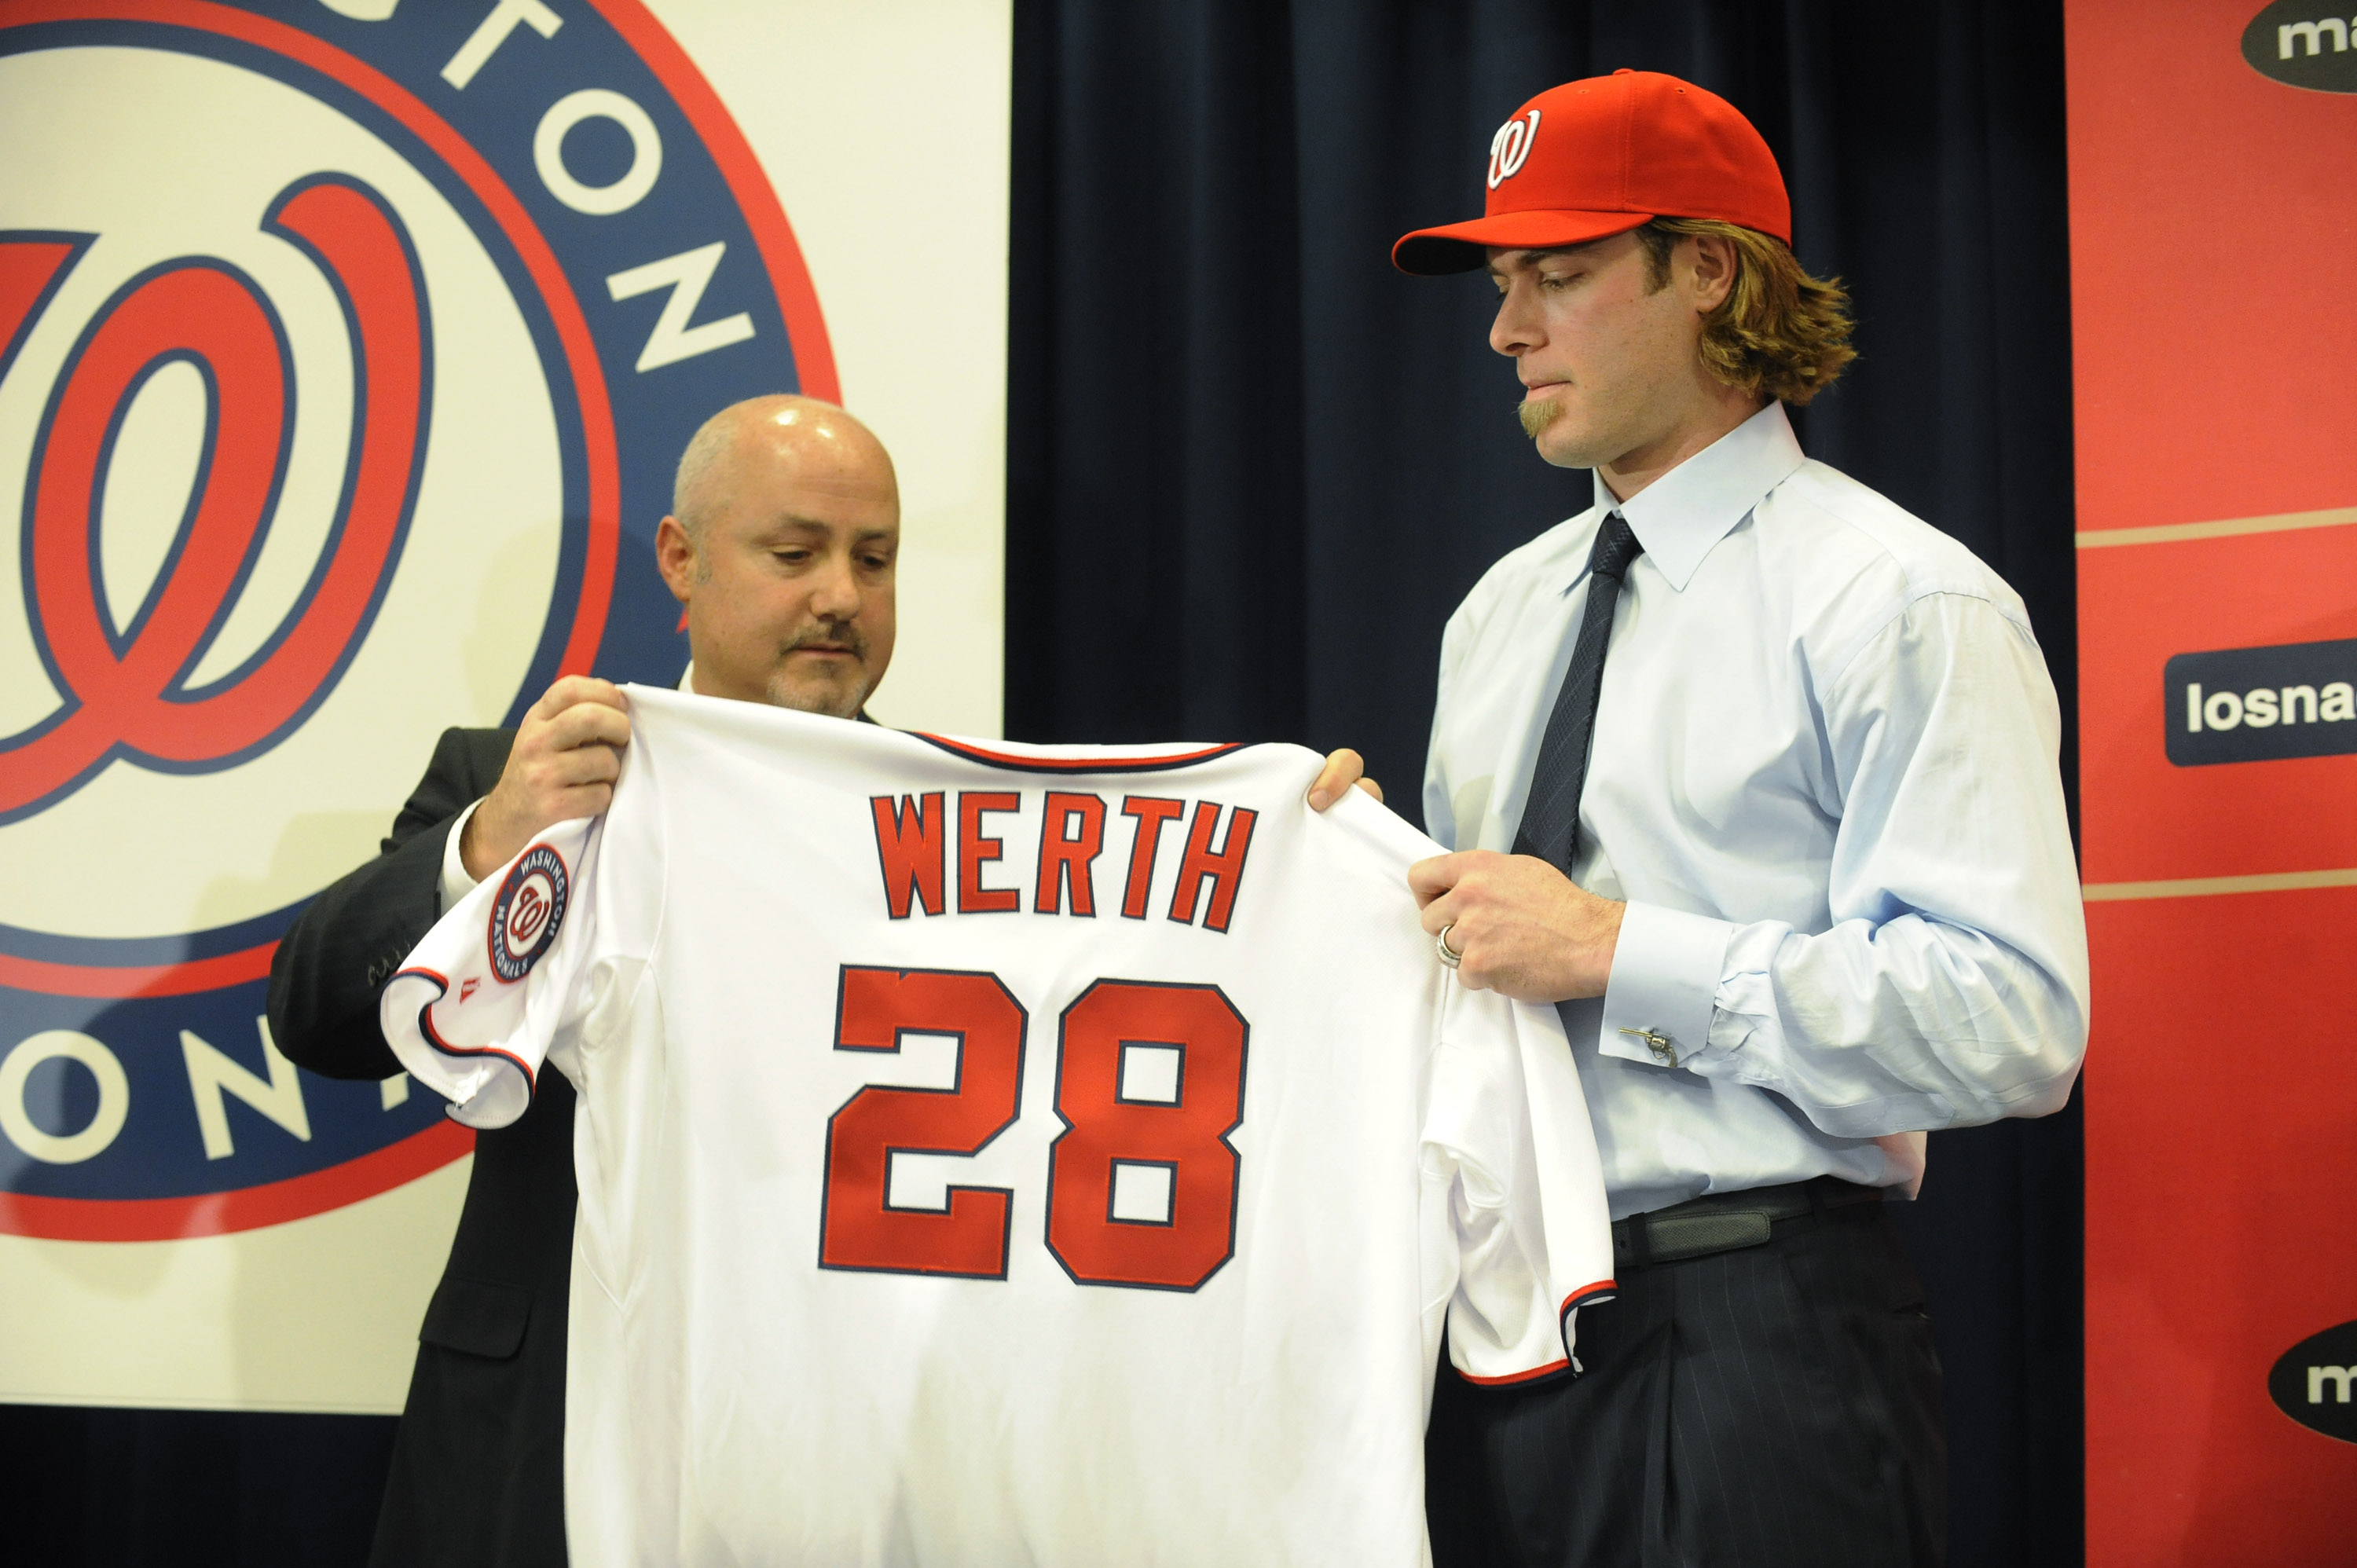 WASHINGTON, DC - DECEMBER 15:  Executive Vice President of Baseball Operations and General Manager Mike Rizzo (L) introduces Jayson Werth #28  to the media on December 15, 2010 at Nationals Park in Washington, DC.   (Photo by Mitchell Layton/Getty Images)